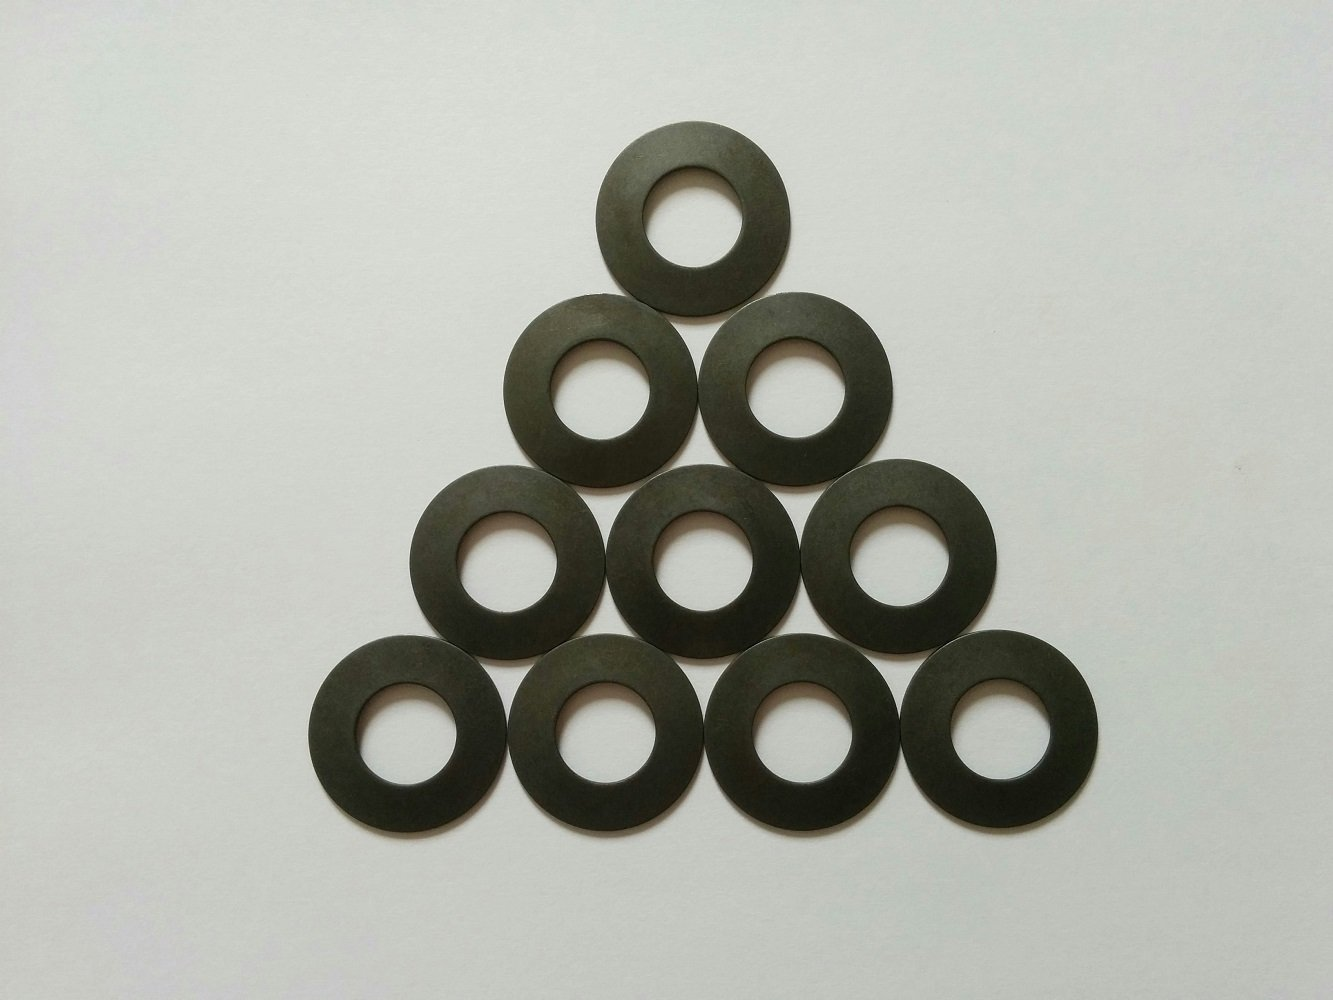 Metric Stainless Steel Belleville Spring Washer.787(20.0mm) Outer Diameter, 0.402(10.2mm) Inner Diameter.039(1.0mm) Thickness, 1,418 Newtons Max. Load (Pack of 10)